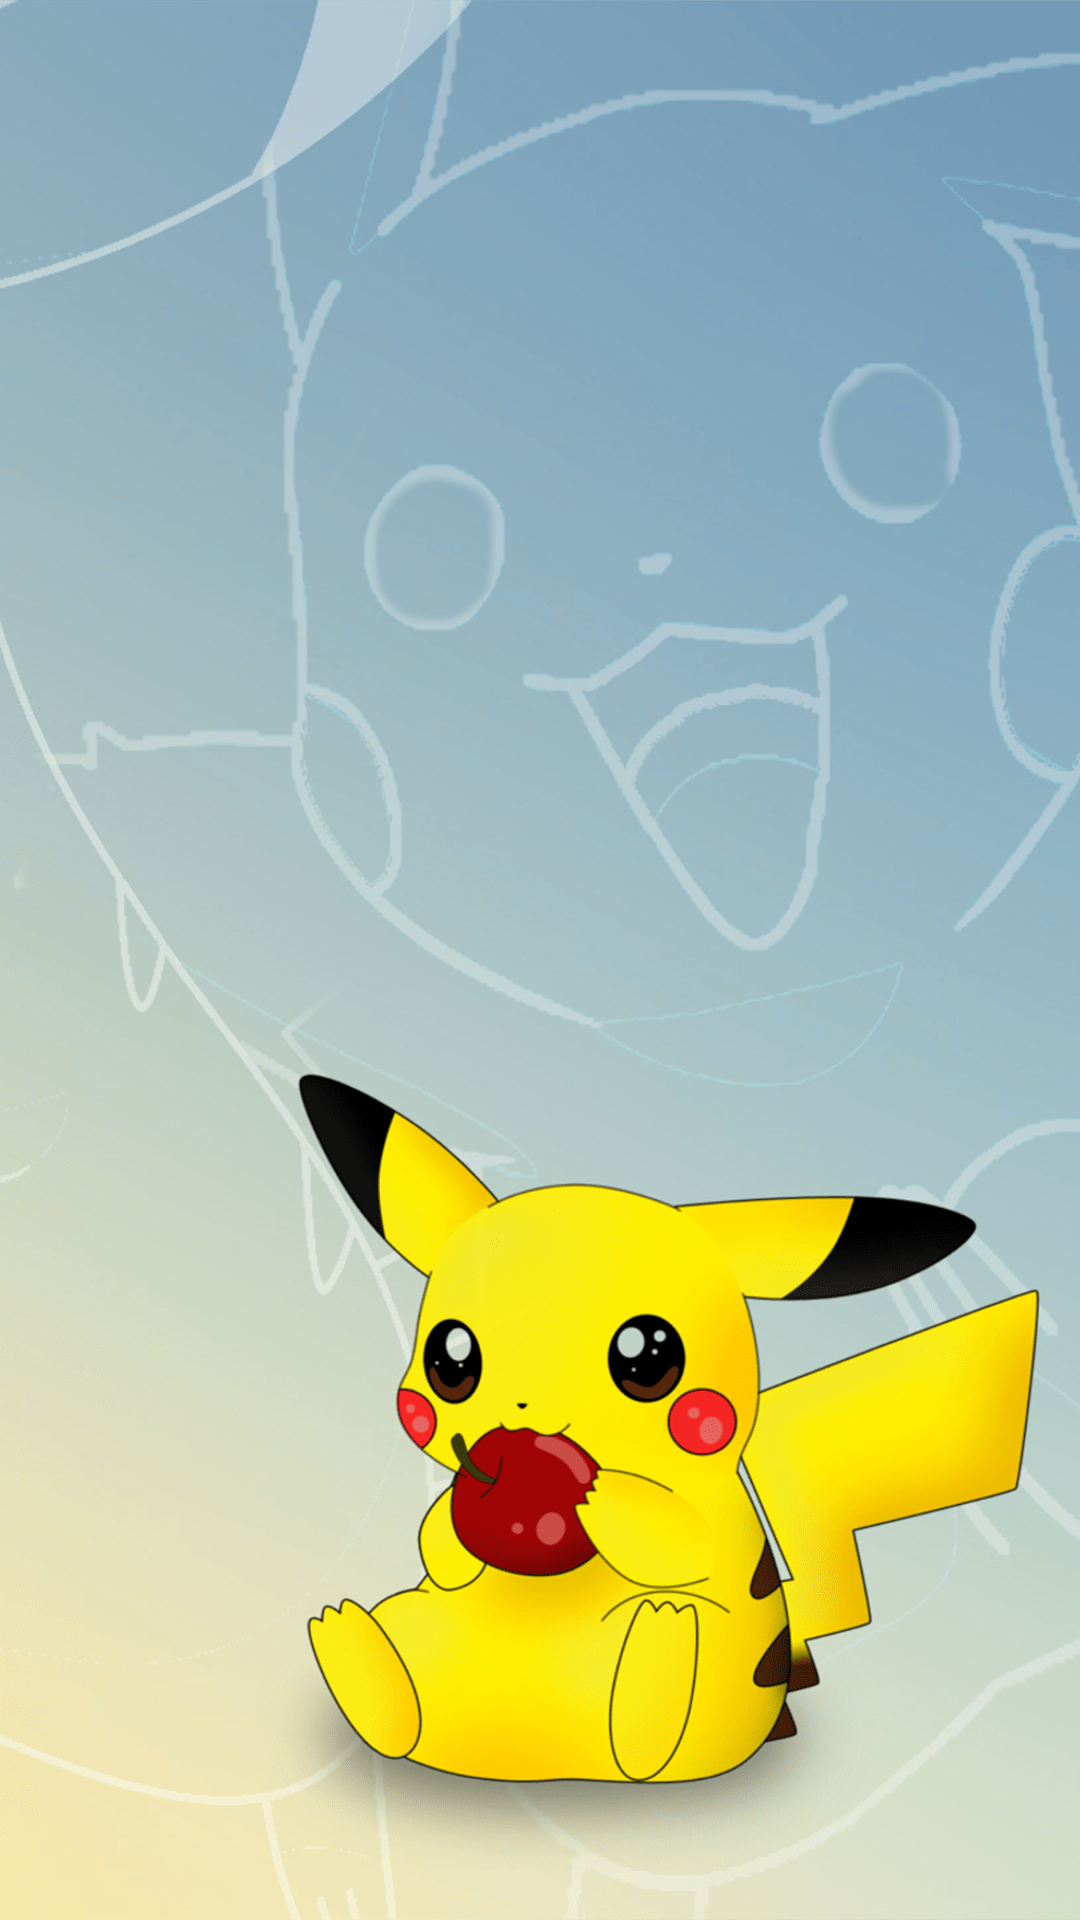 3D Pokémon Go Wallpapers Top Free 3D Pokémon Go